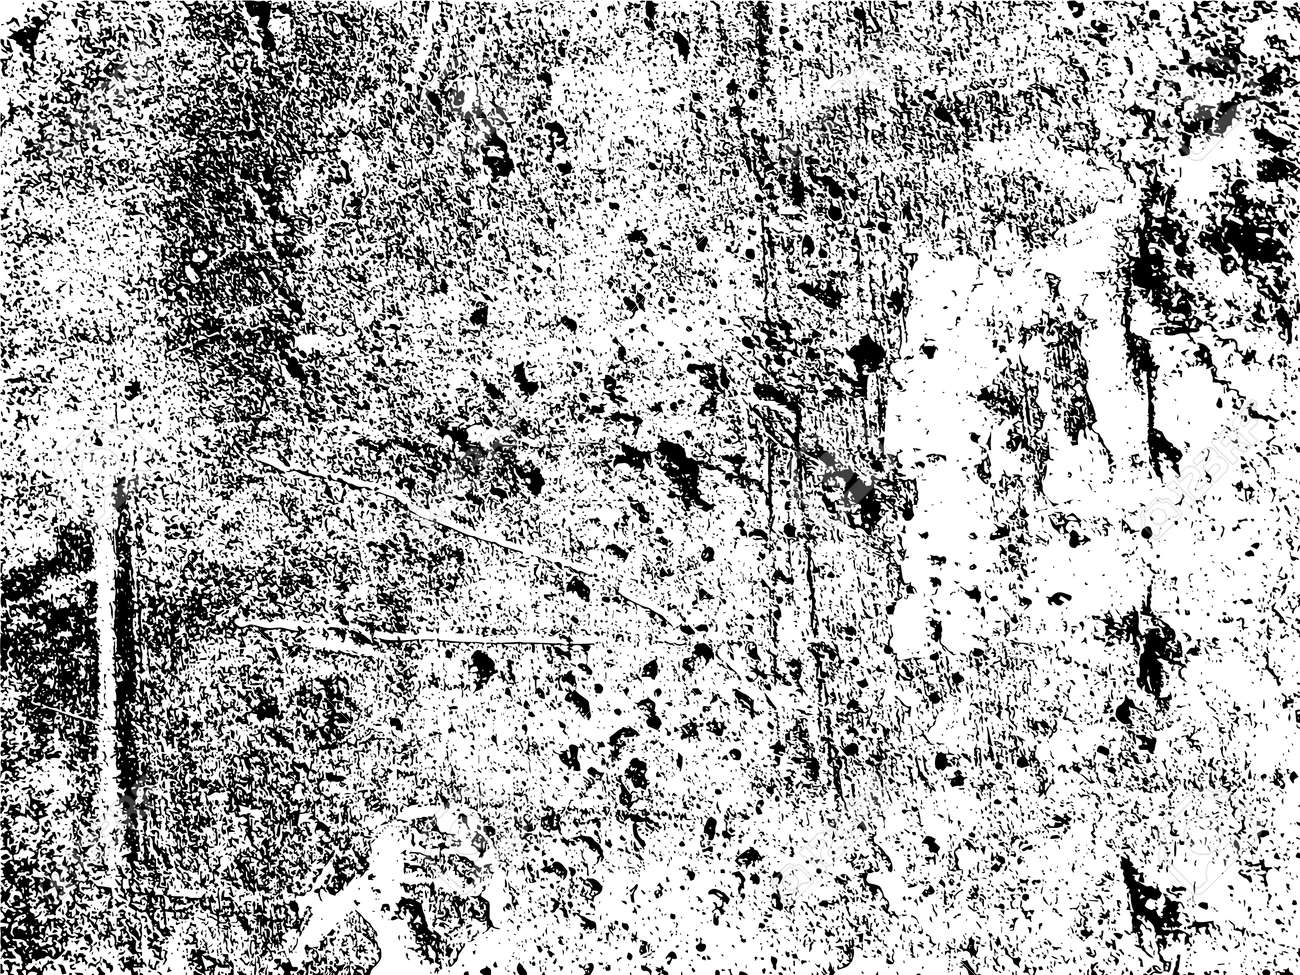 Concrete texture. Cement overlay black and white texture. - 167617463